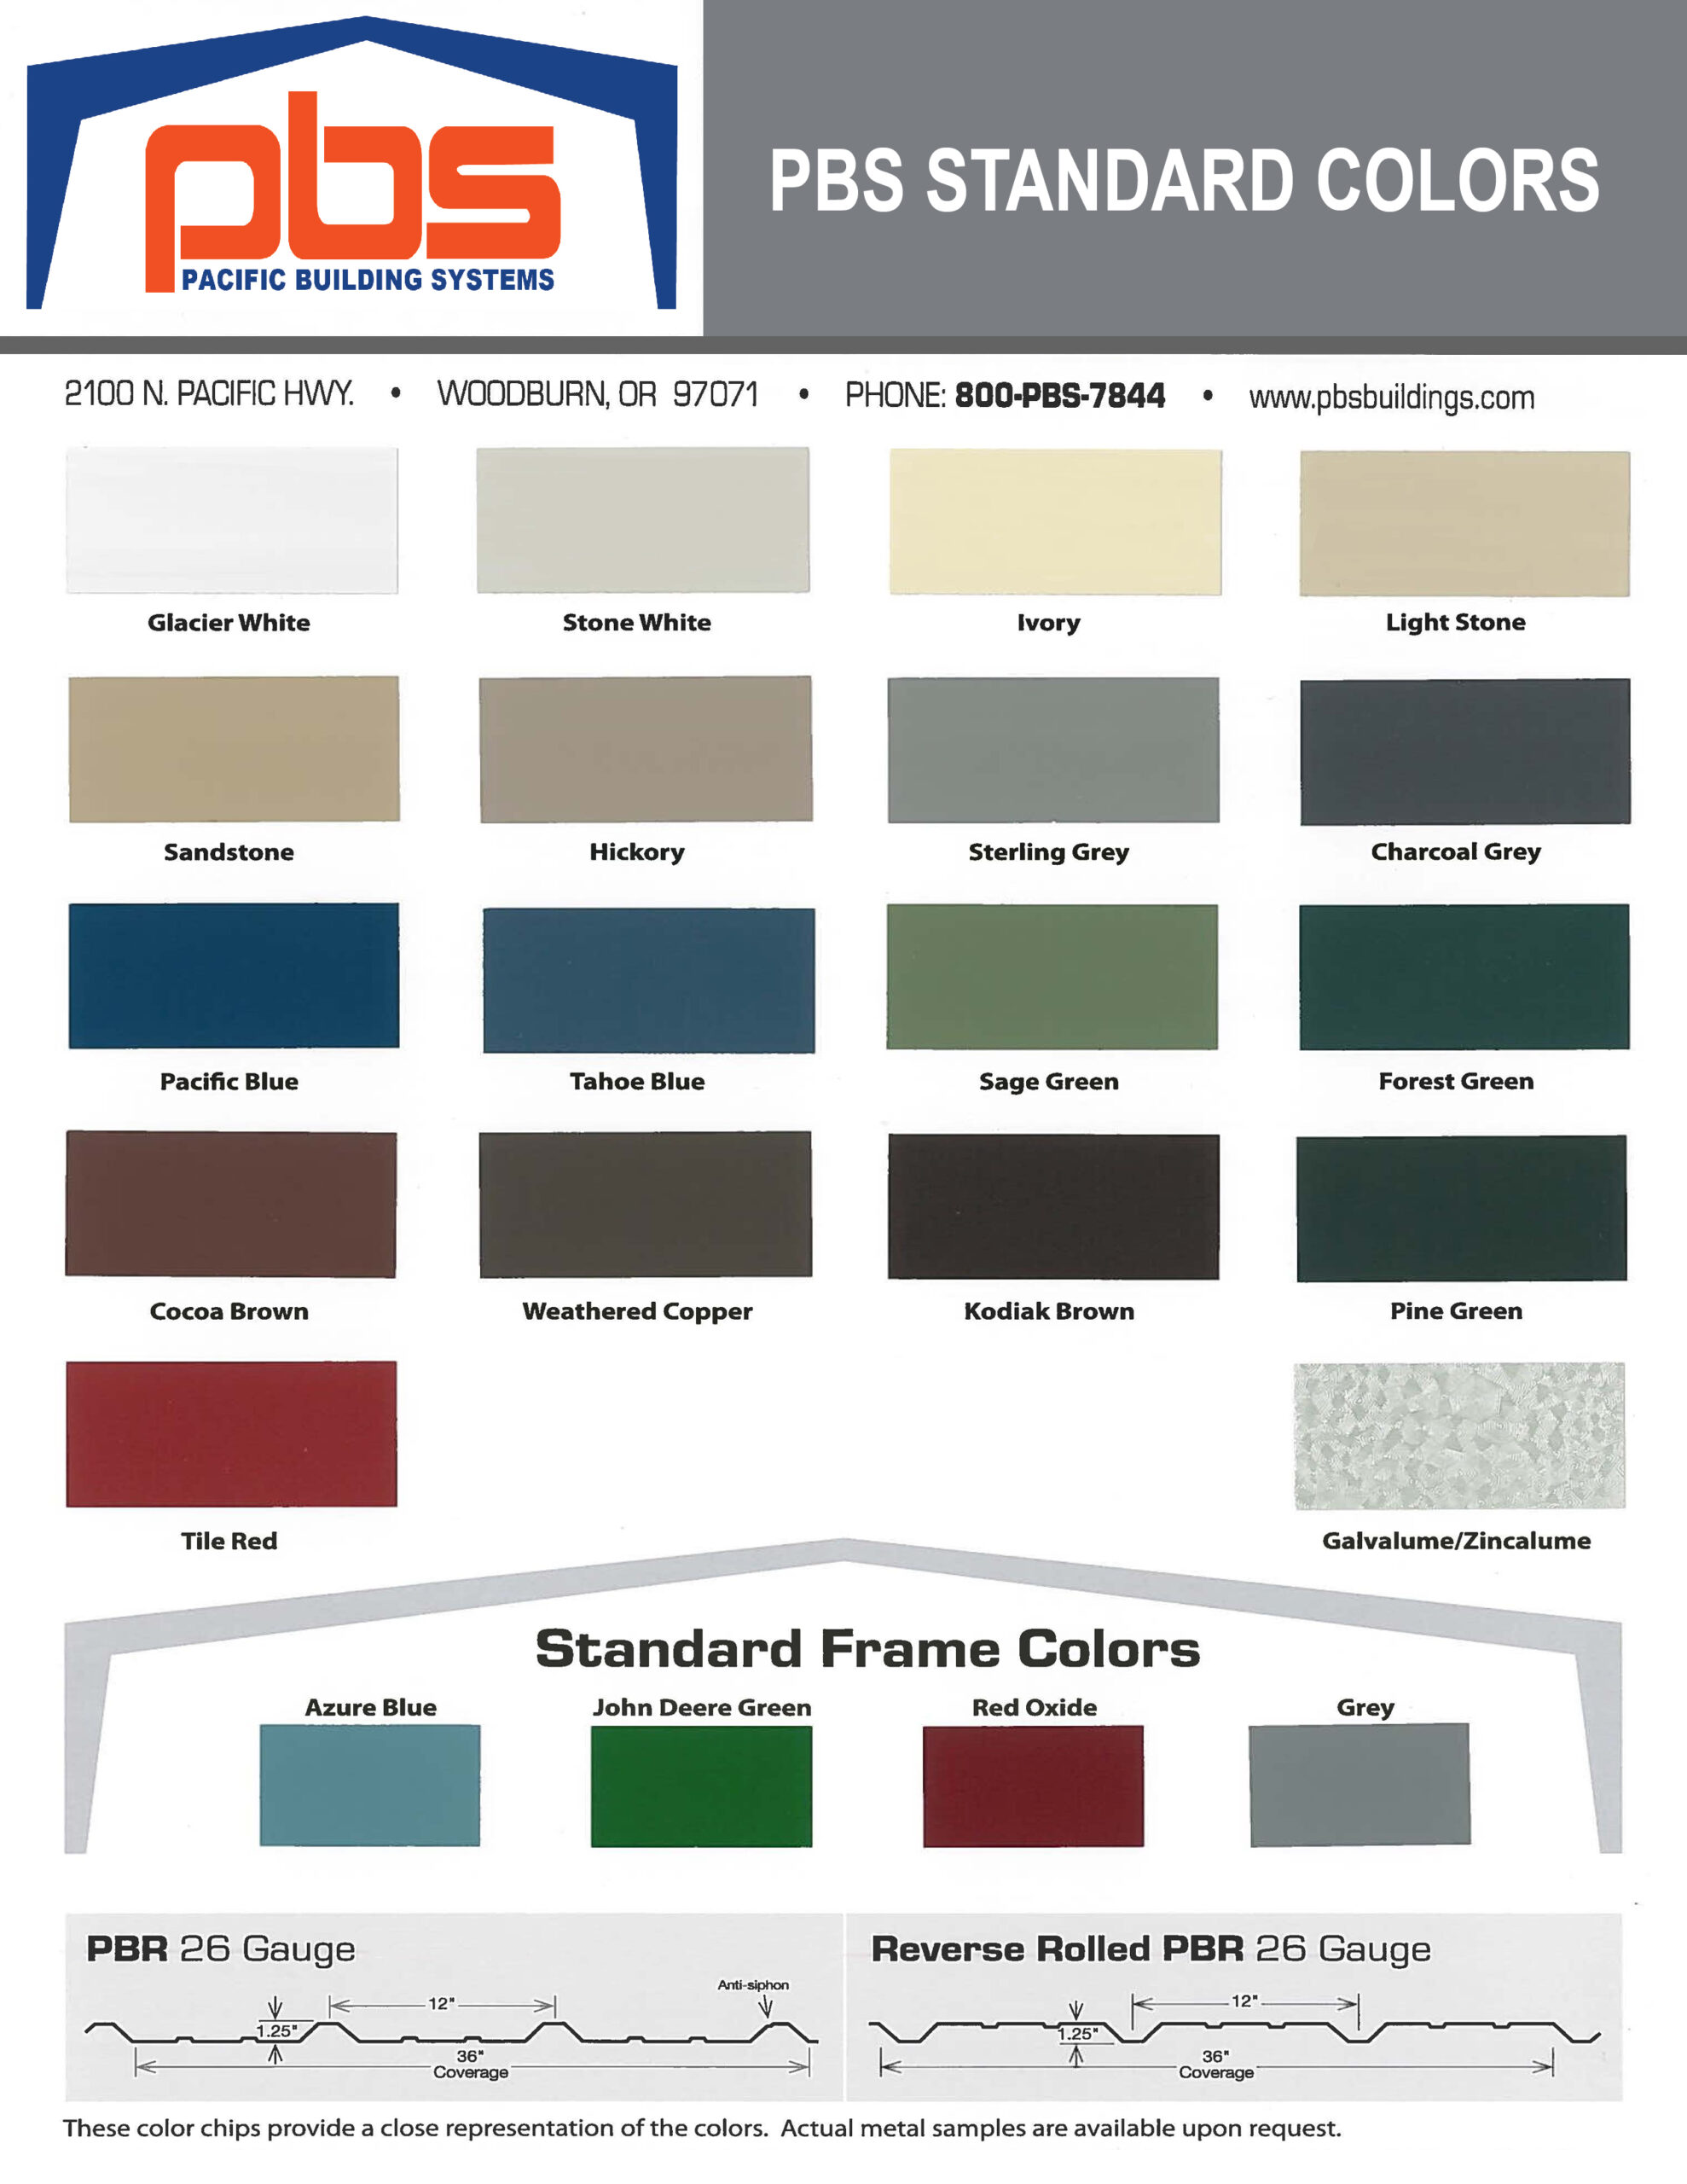 Standard Colors - Color Chart